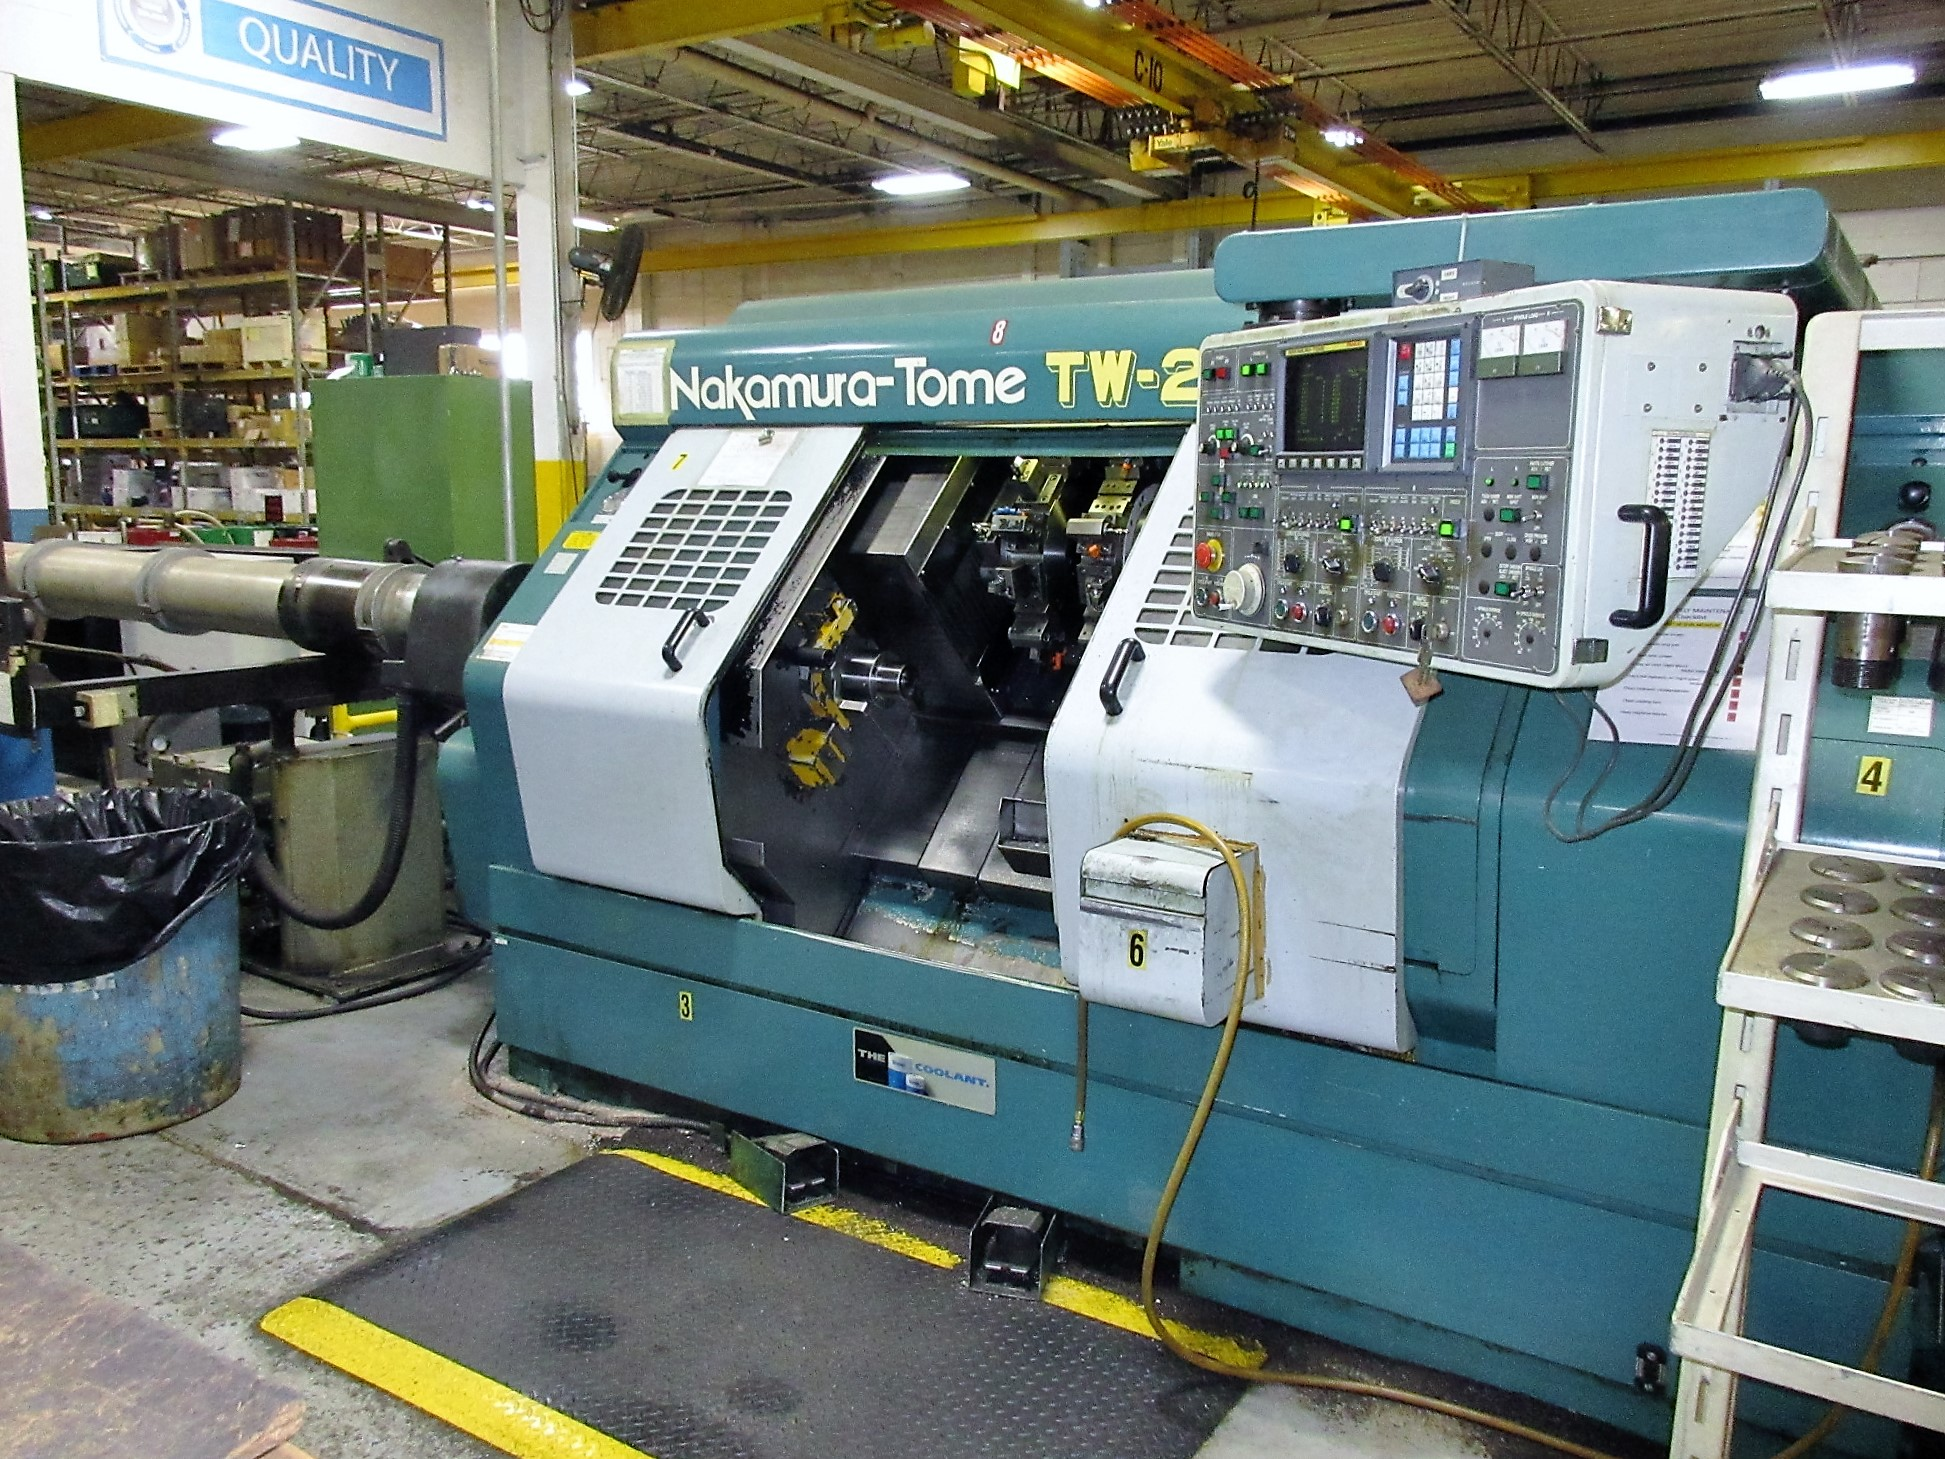 NAKAMURA TOME TW-20 6-AXIS CNC TWIN SPINDLE TURNING CENTER - Image 3 of 17